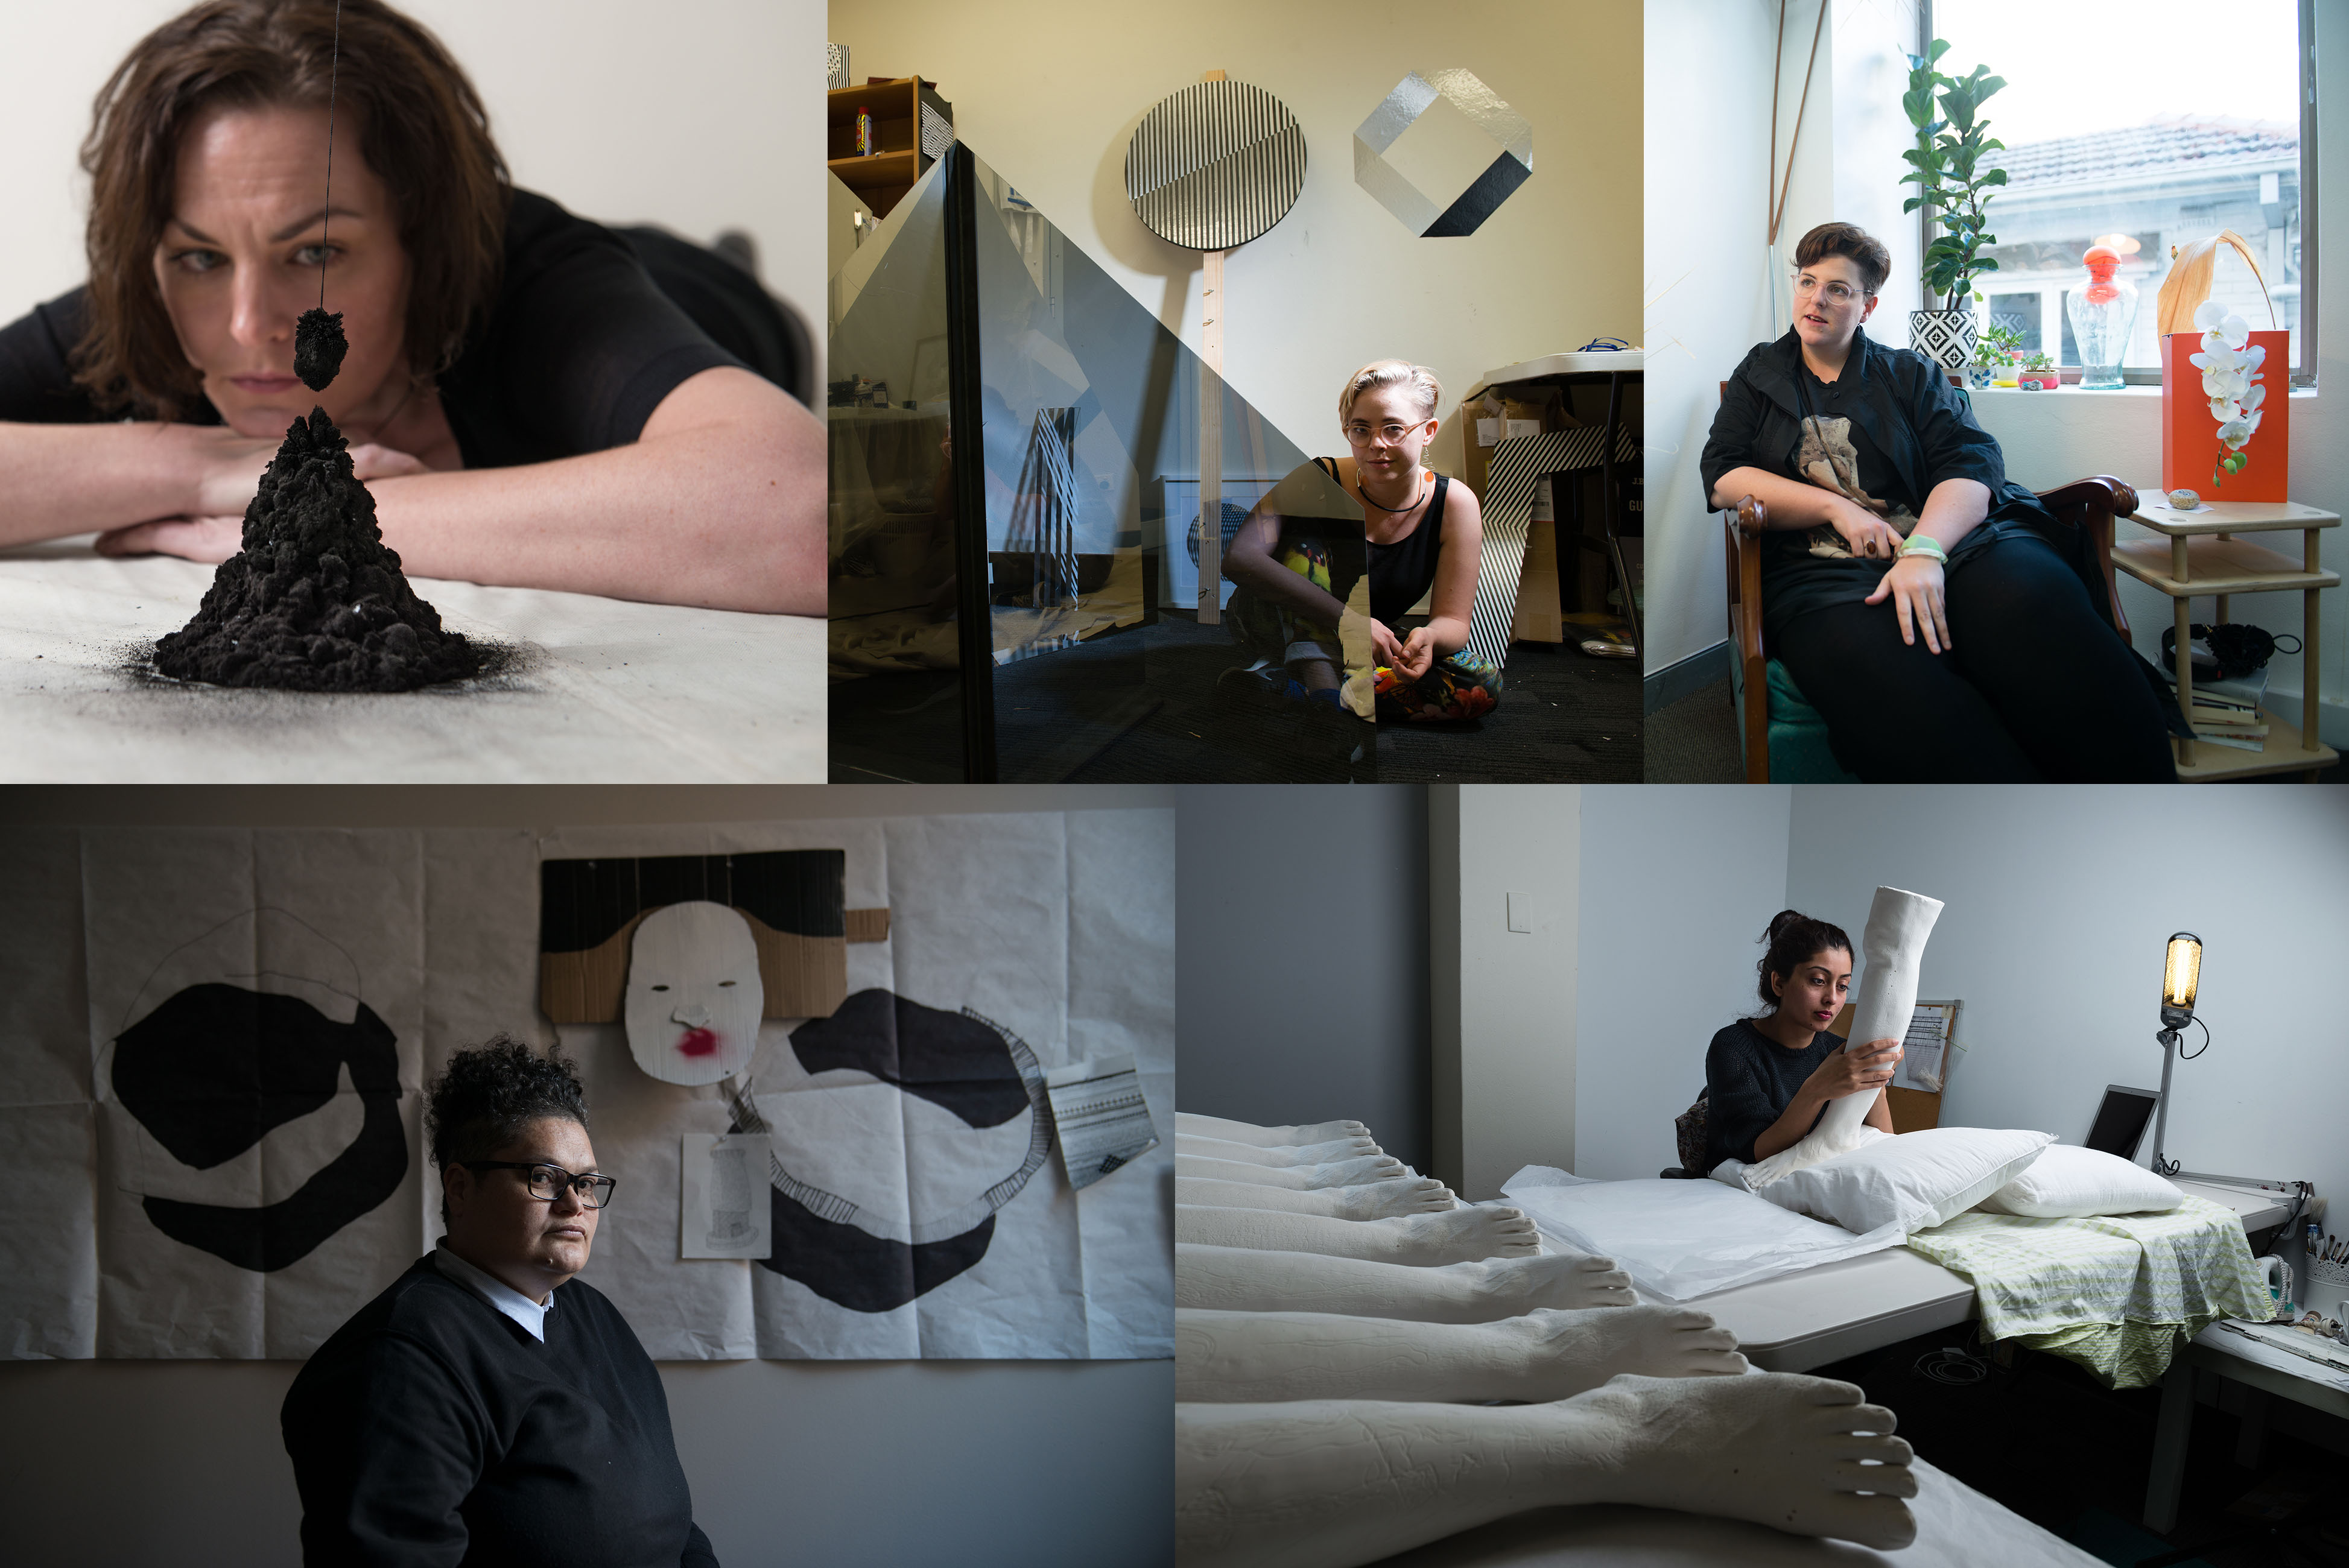 Image: 2016 Parramatta Artists Studio artists (clockwise from top left): Emma Fielden, Nadia Odium, Anna McMahon, Salote Tawale and Mehwish Iqbal